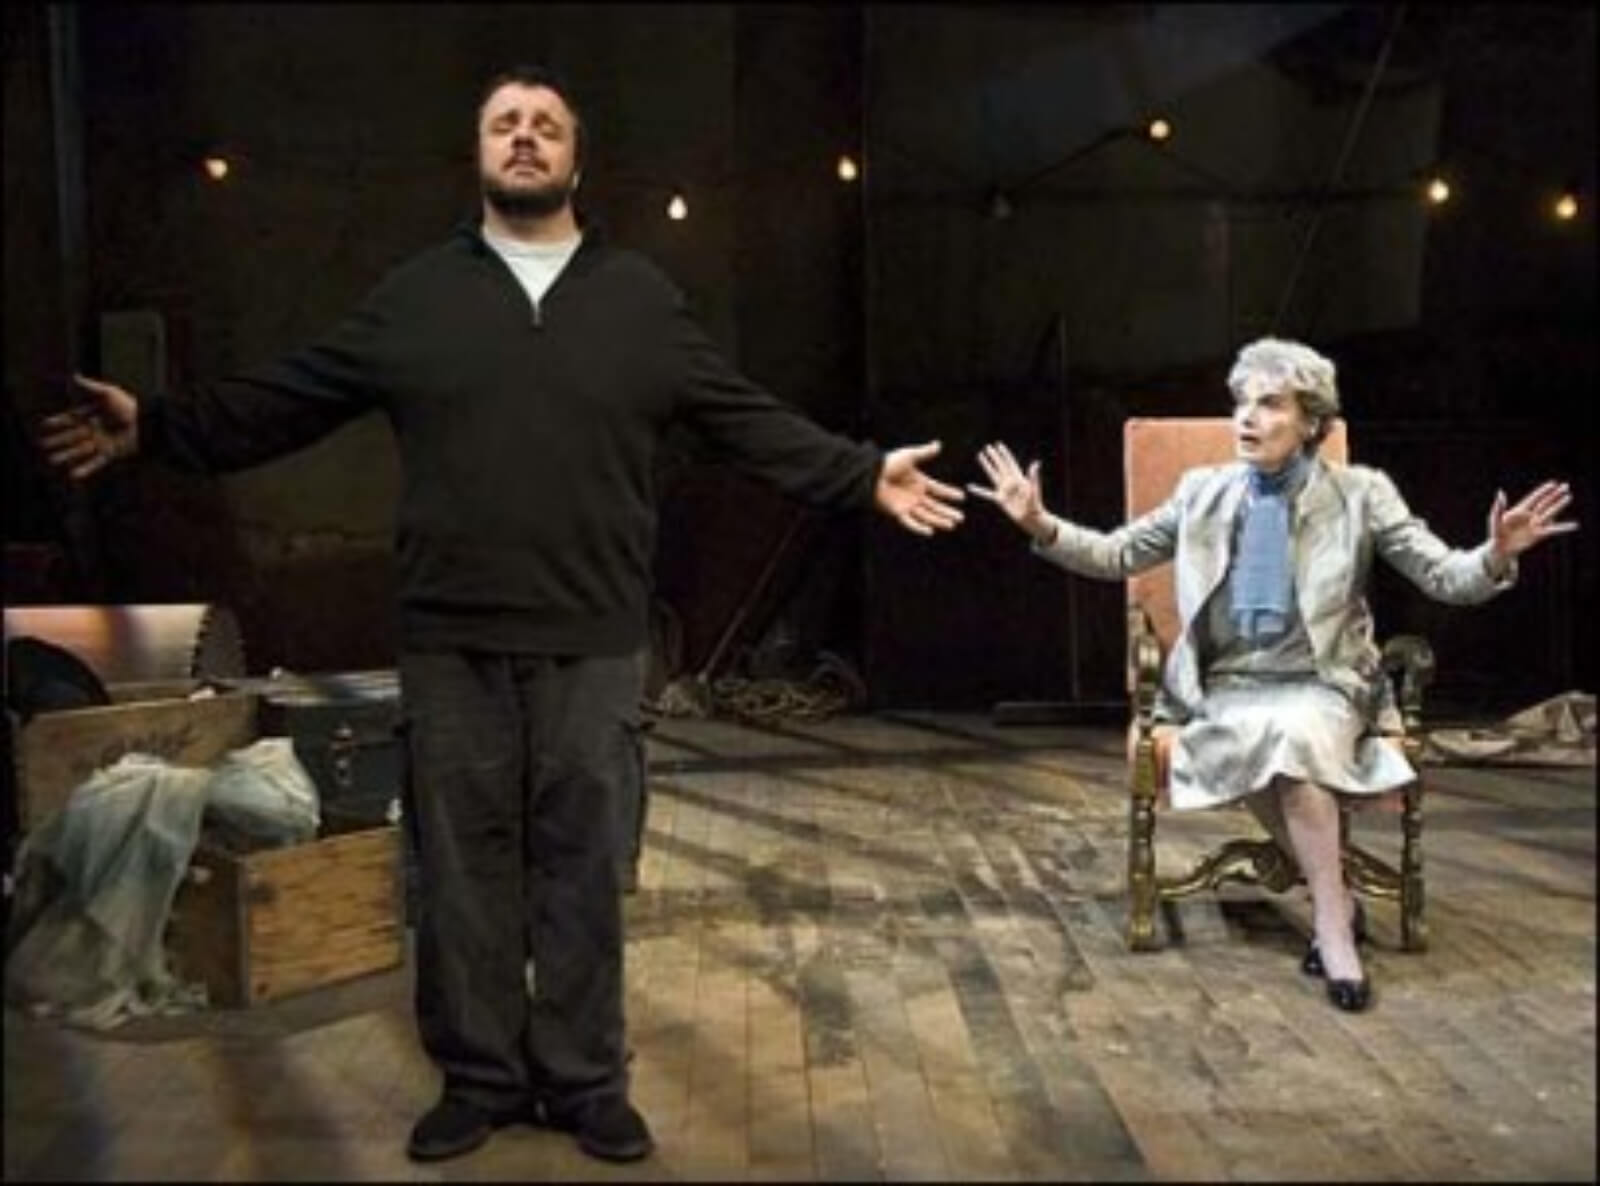 Lou Nuncle (Nathan Lane) stands with eyes closed and arms open while Annabelle Willard (Marian Seldes) sits behind him